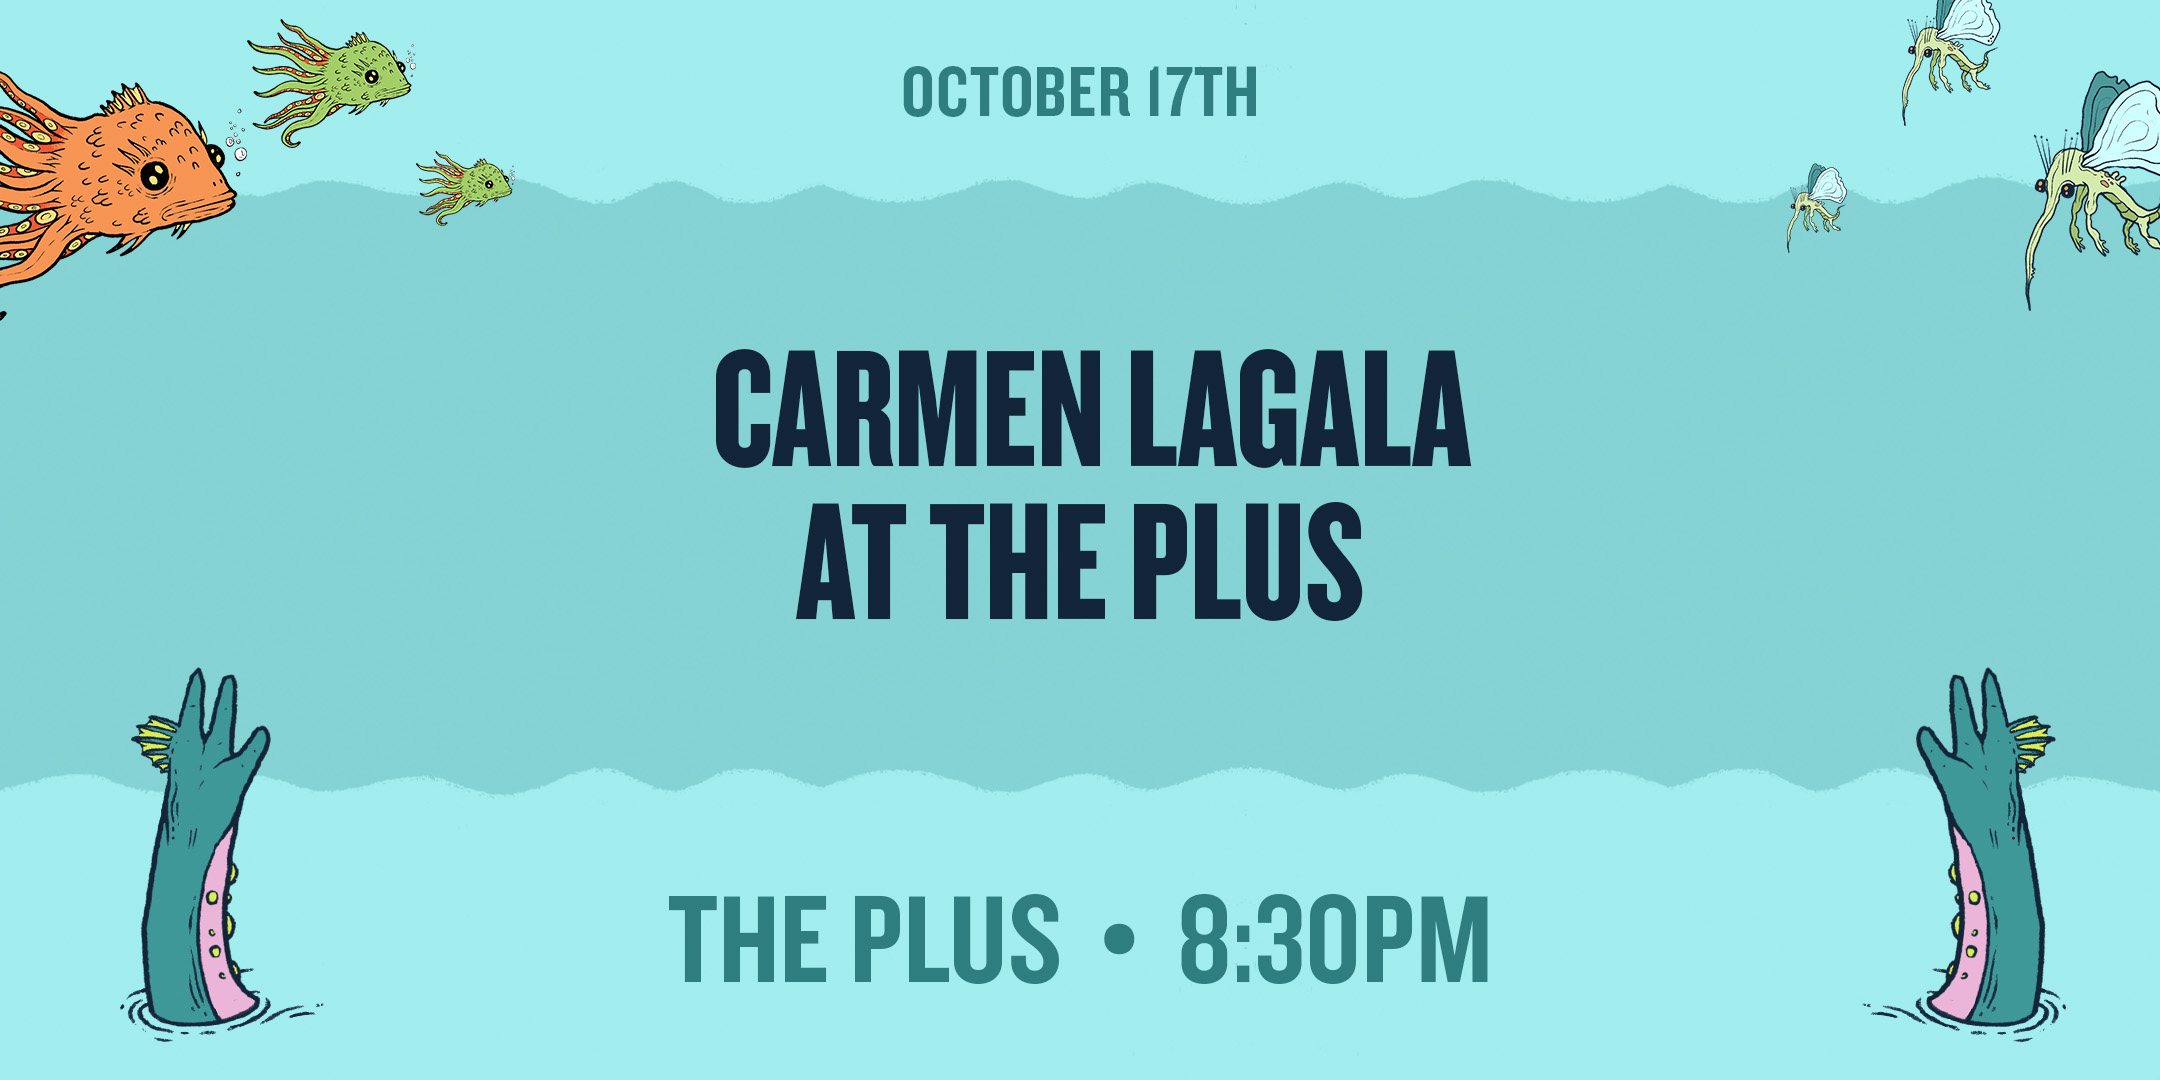 OCT17-Carmen Lagala at the Plus.jpg